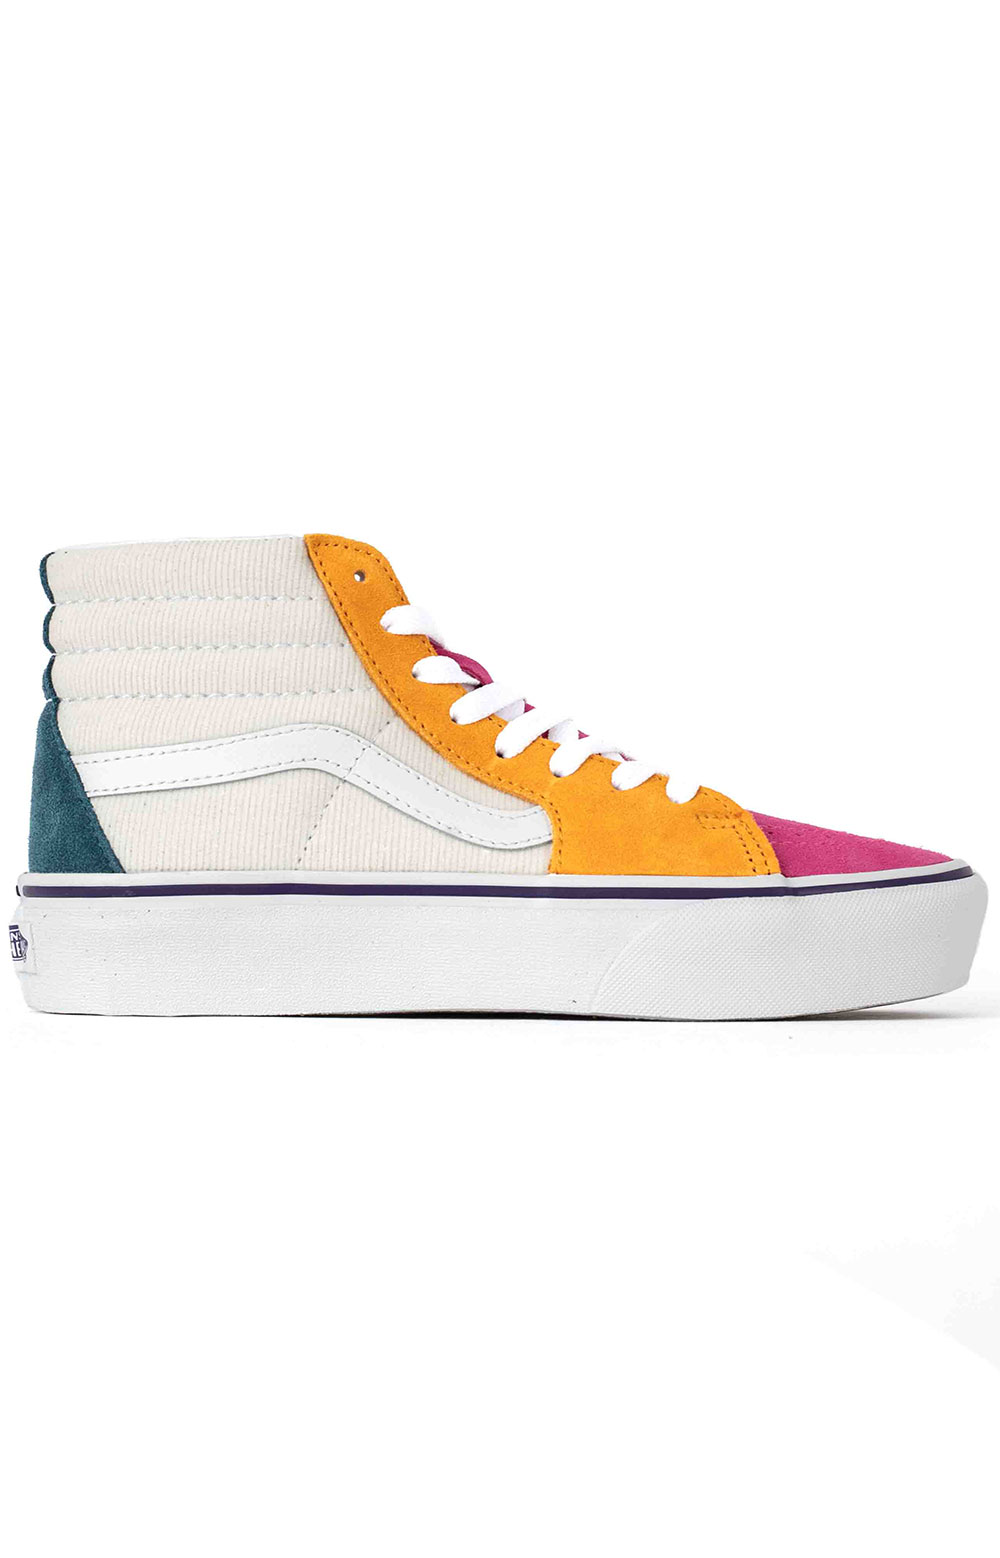 (TKNWVY) Mini Cord SK8-Hi Platform 2 Shoes - Multi/True White